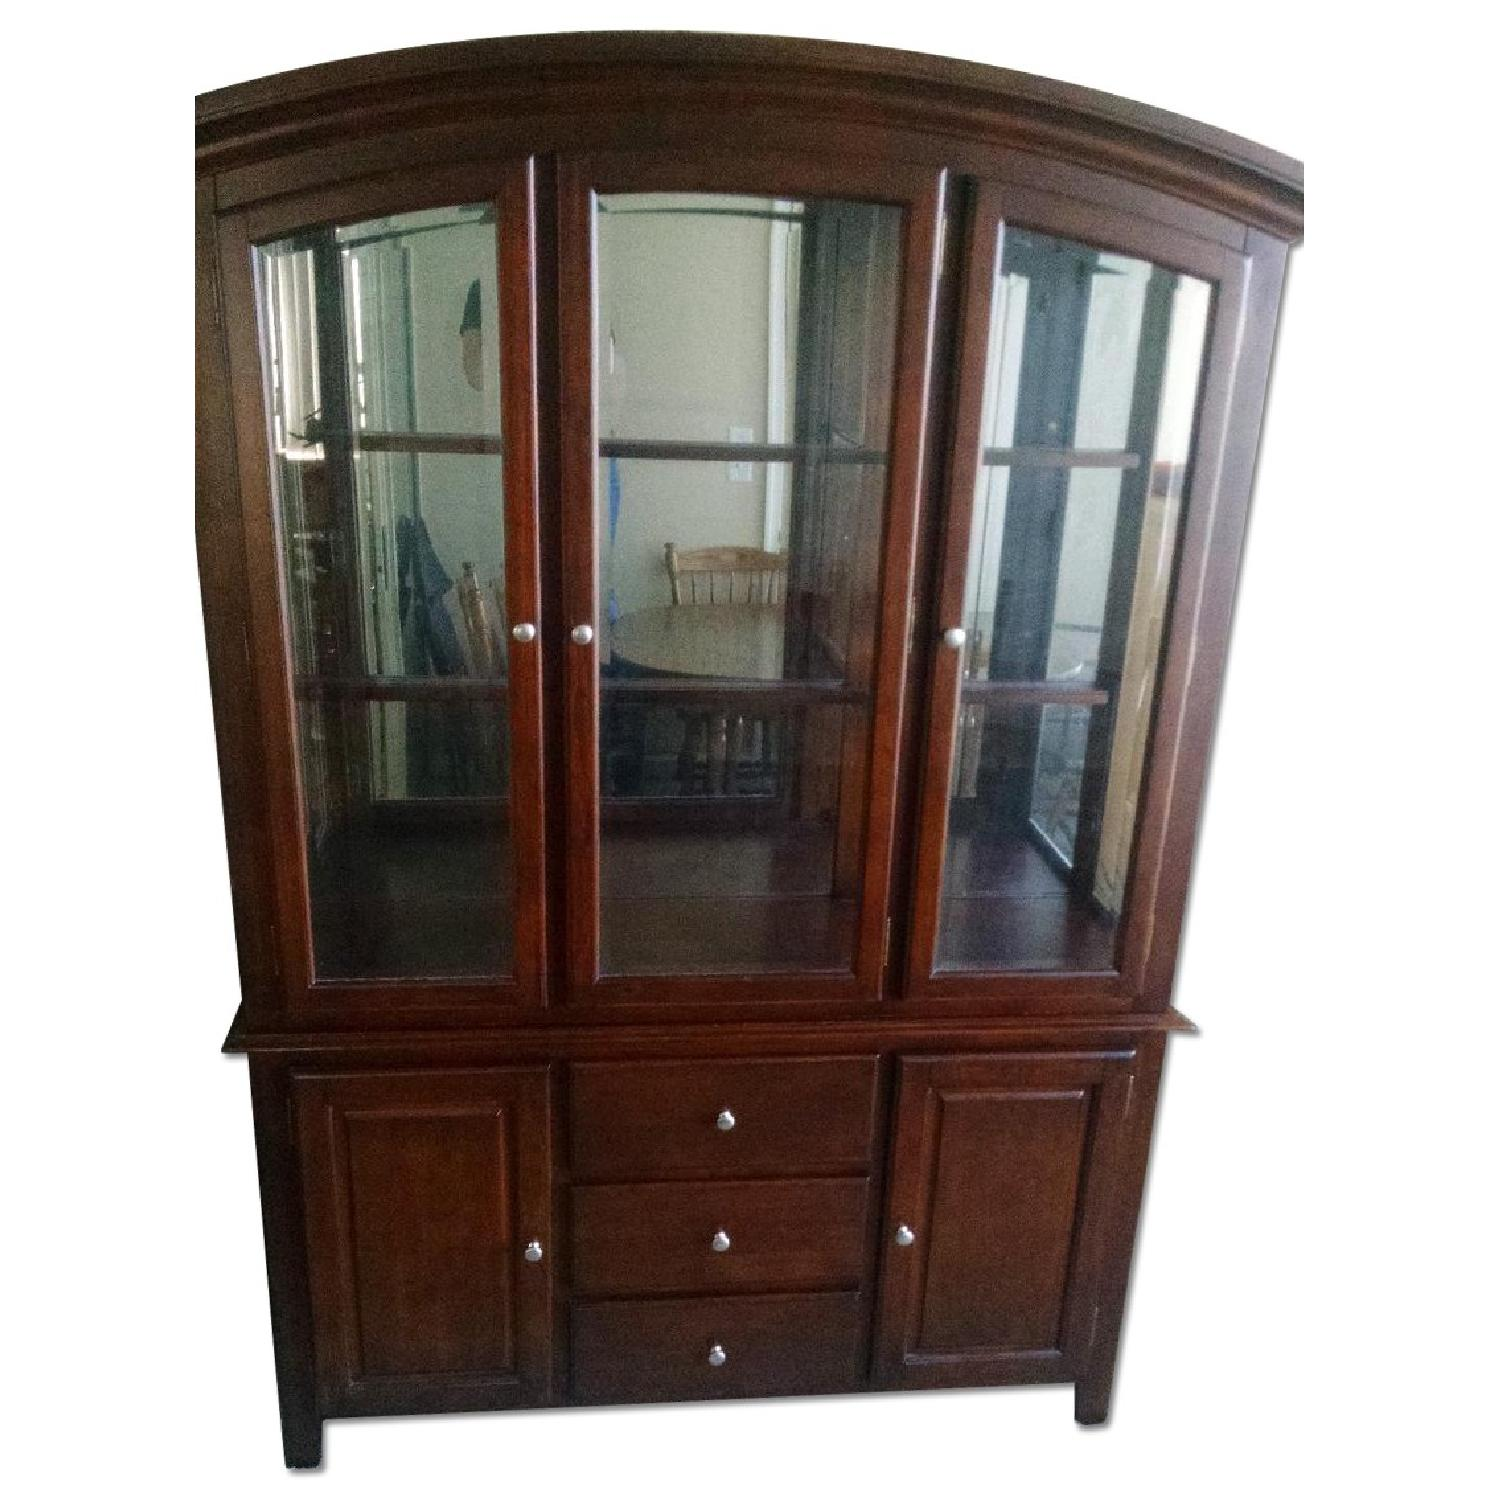 Lighted China Cabinet - image-0